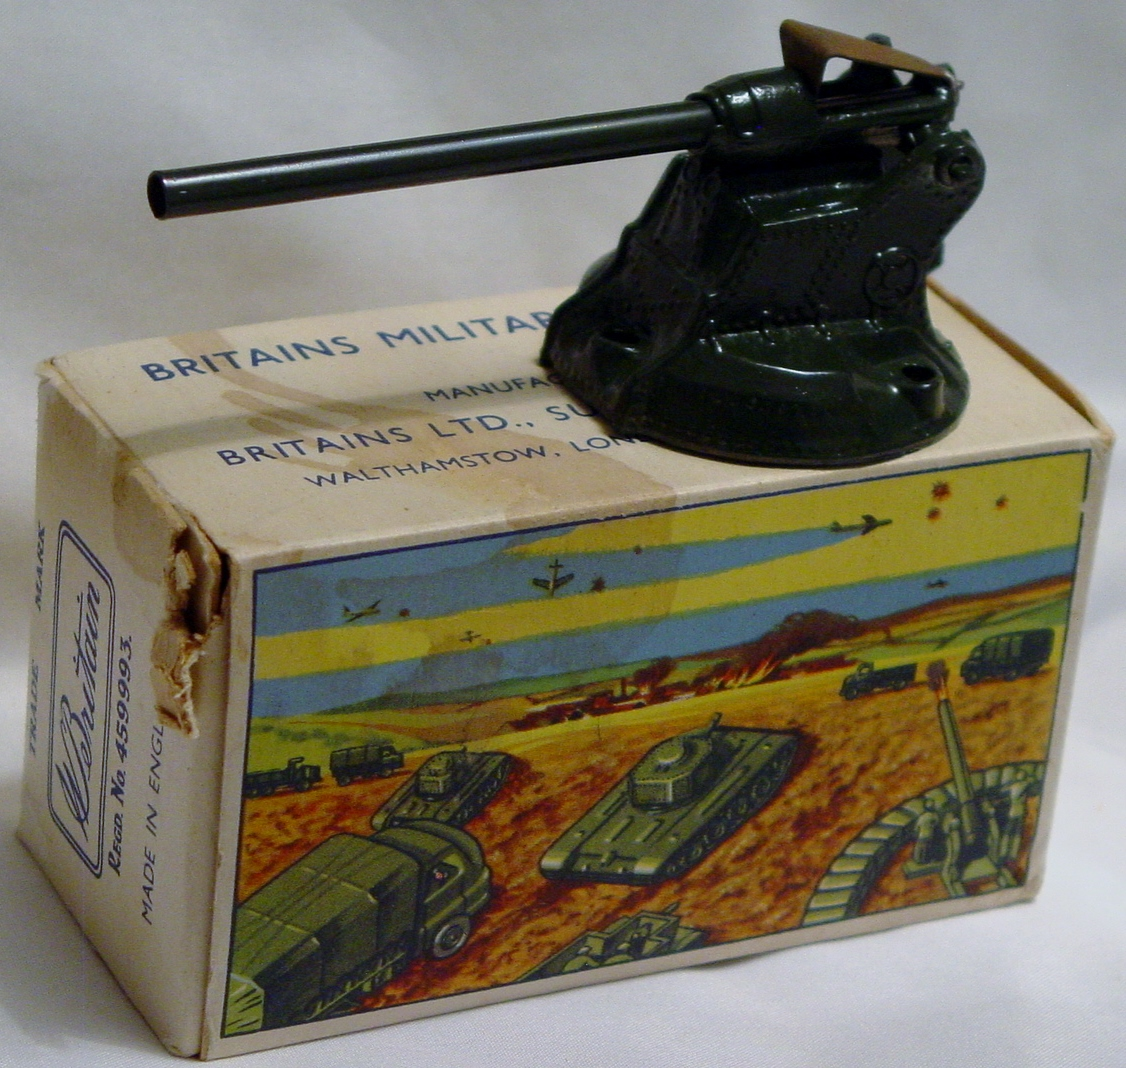 43 - BRITAINS 2LB 40mm AA Gun with instructions C8 box